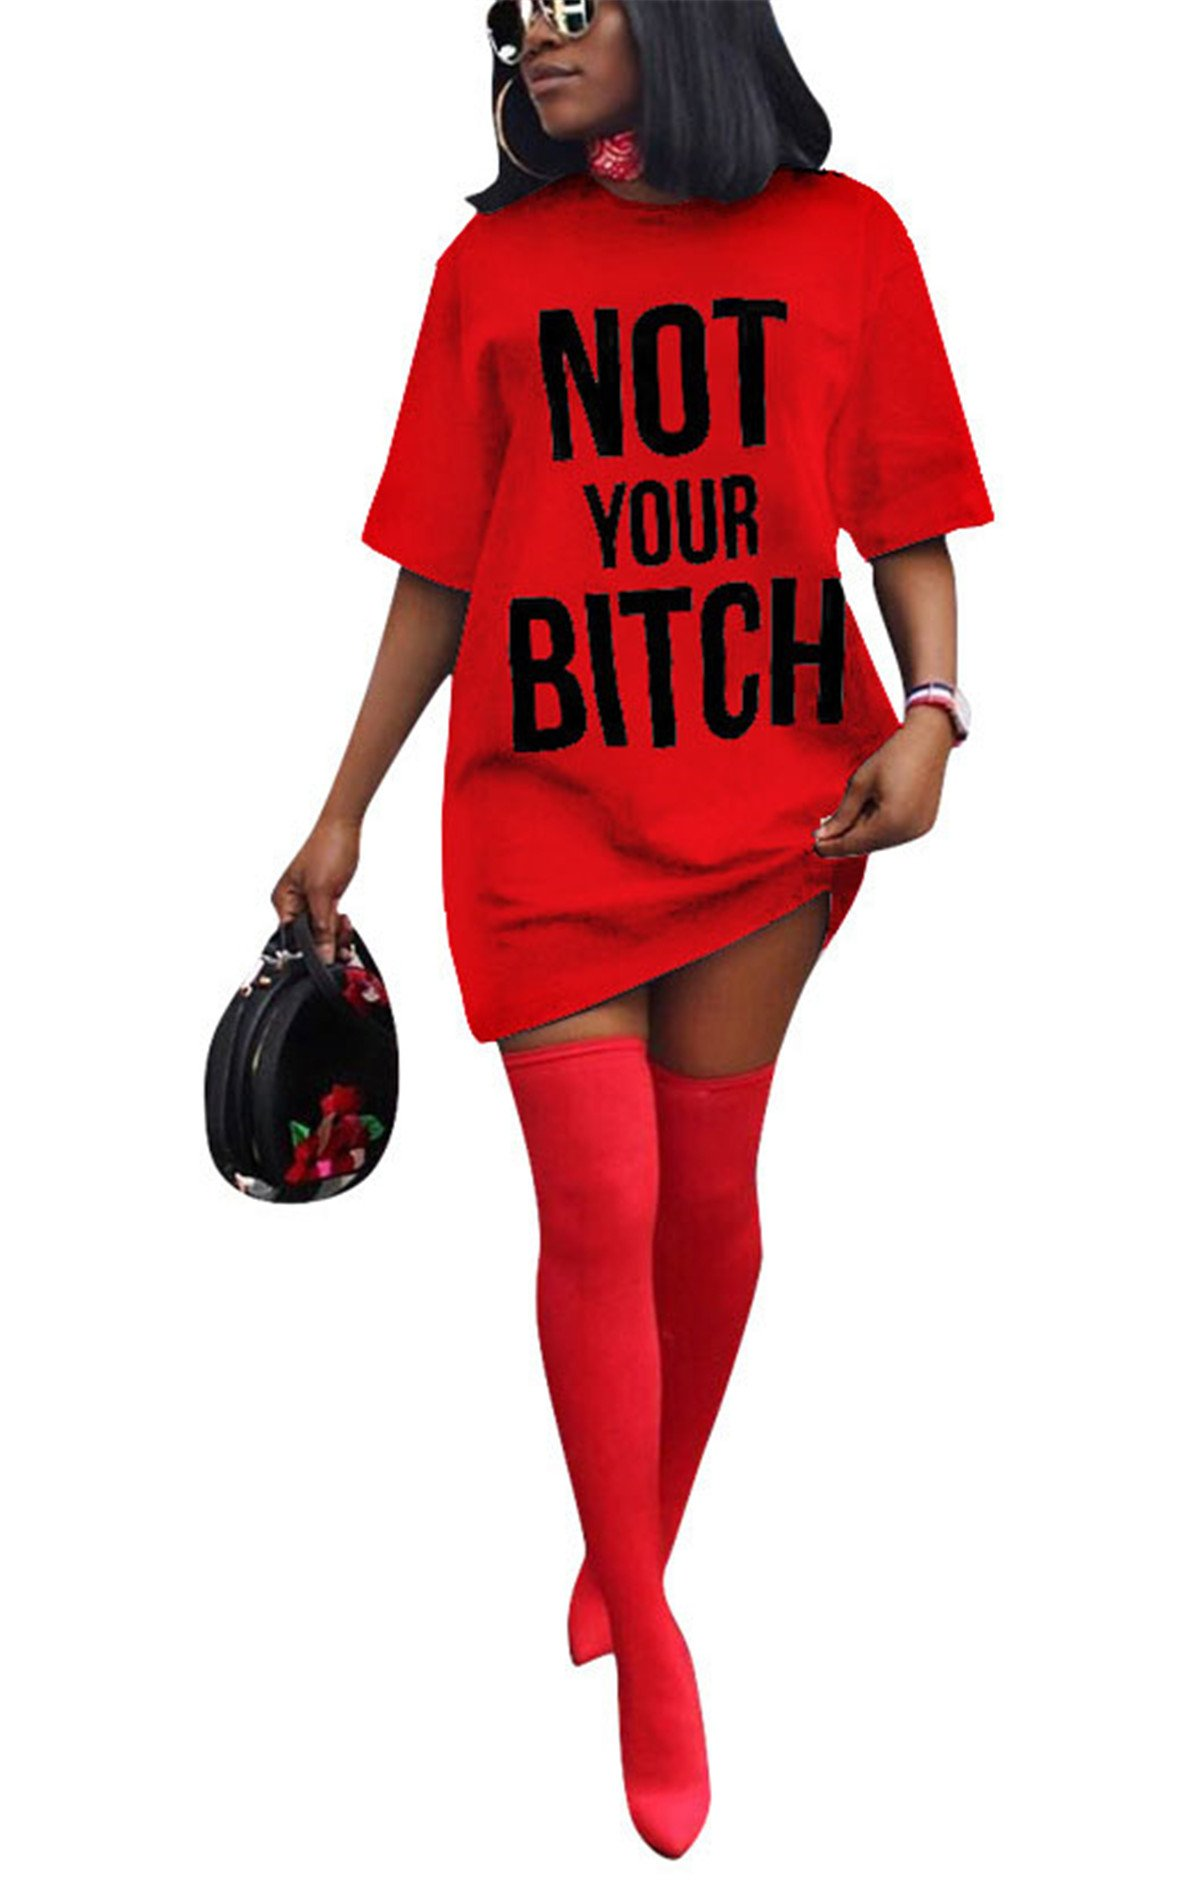 Antique Style Women's Girls Summer Fashion Short Sleeve Letters Printed Plus Size Loose Tees Tunic Top Basic T-Shirts Blouse Club Dress Red XXL